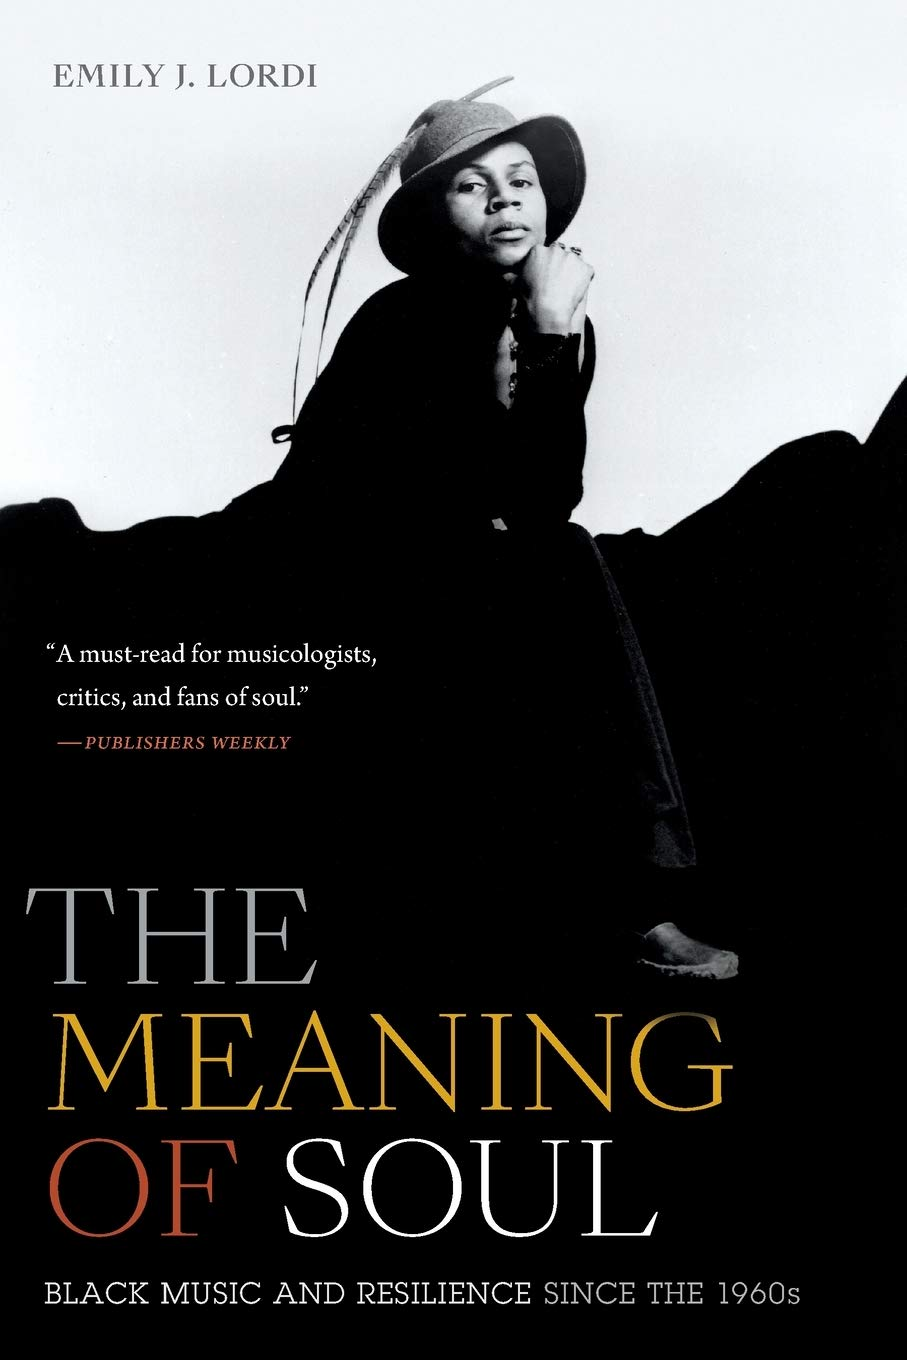 The cover of The Meaning of Soul: Black Music and Resilience since the 1960s